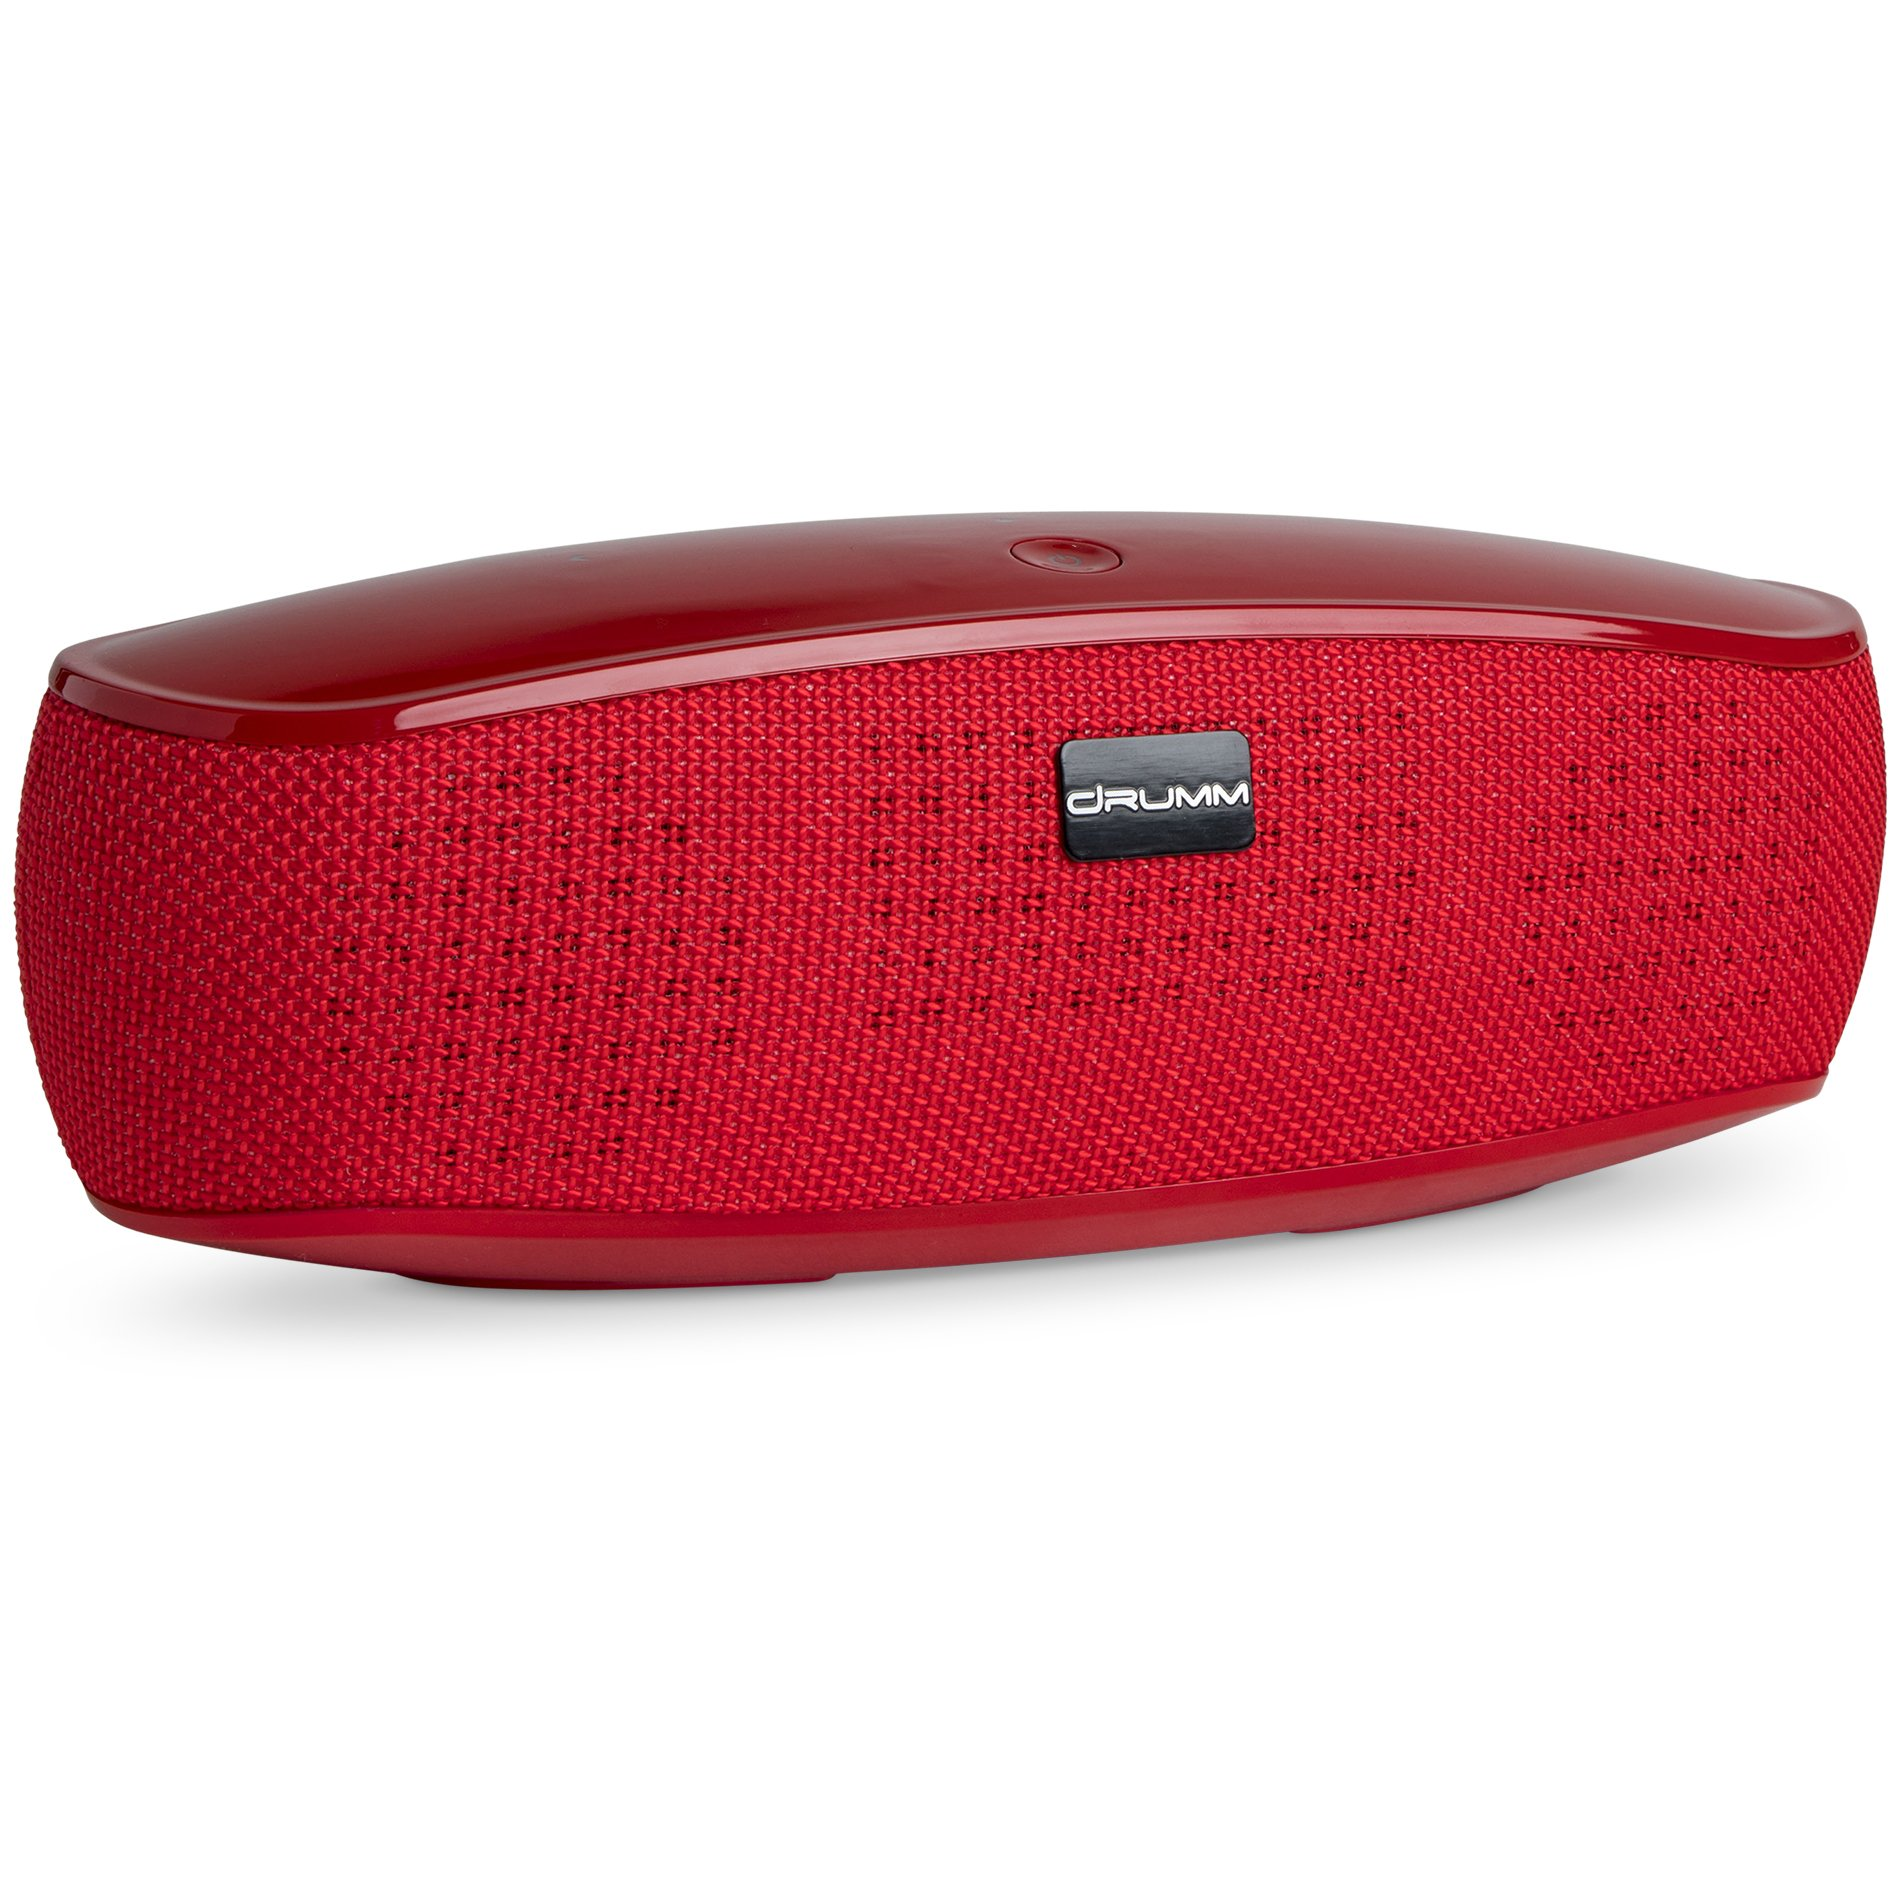 Portable Wireless Bluetooth Speaker by Drumm - Great for...